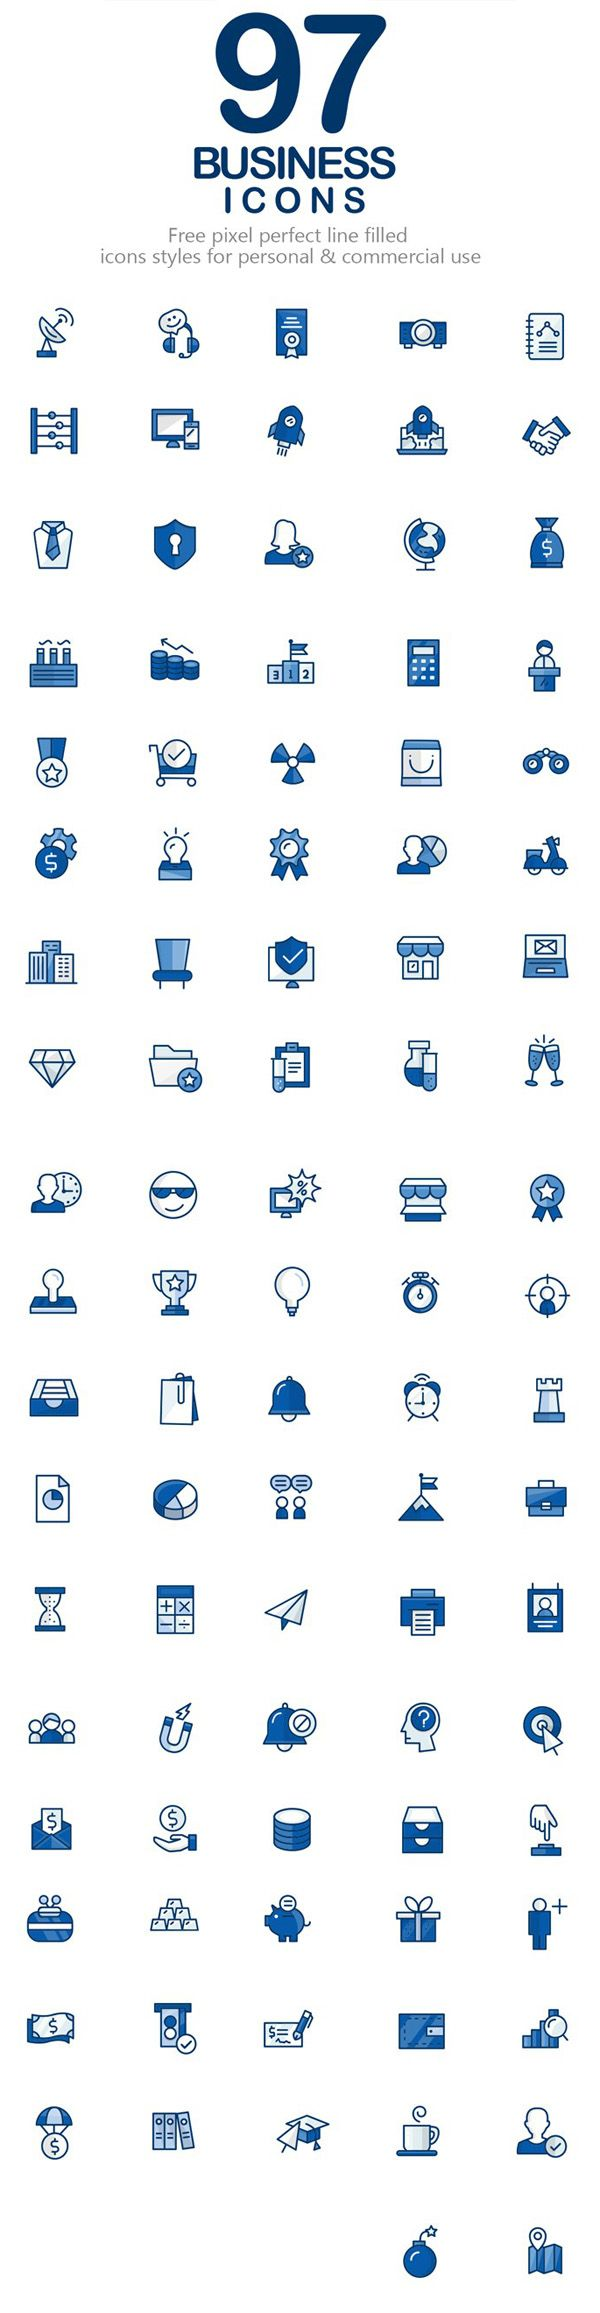 Free Business Vector Icons (97 Icons) #androidicons #freeicons #vectoricons #lineicons #psdicons